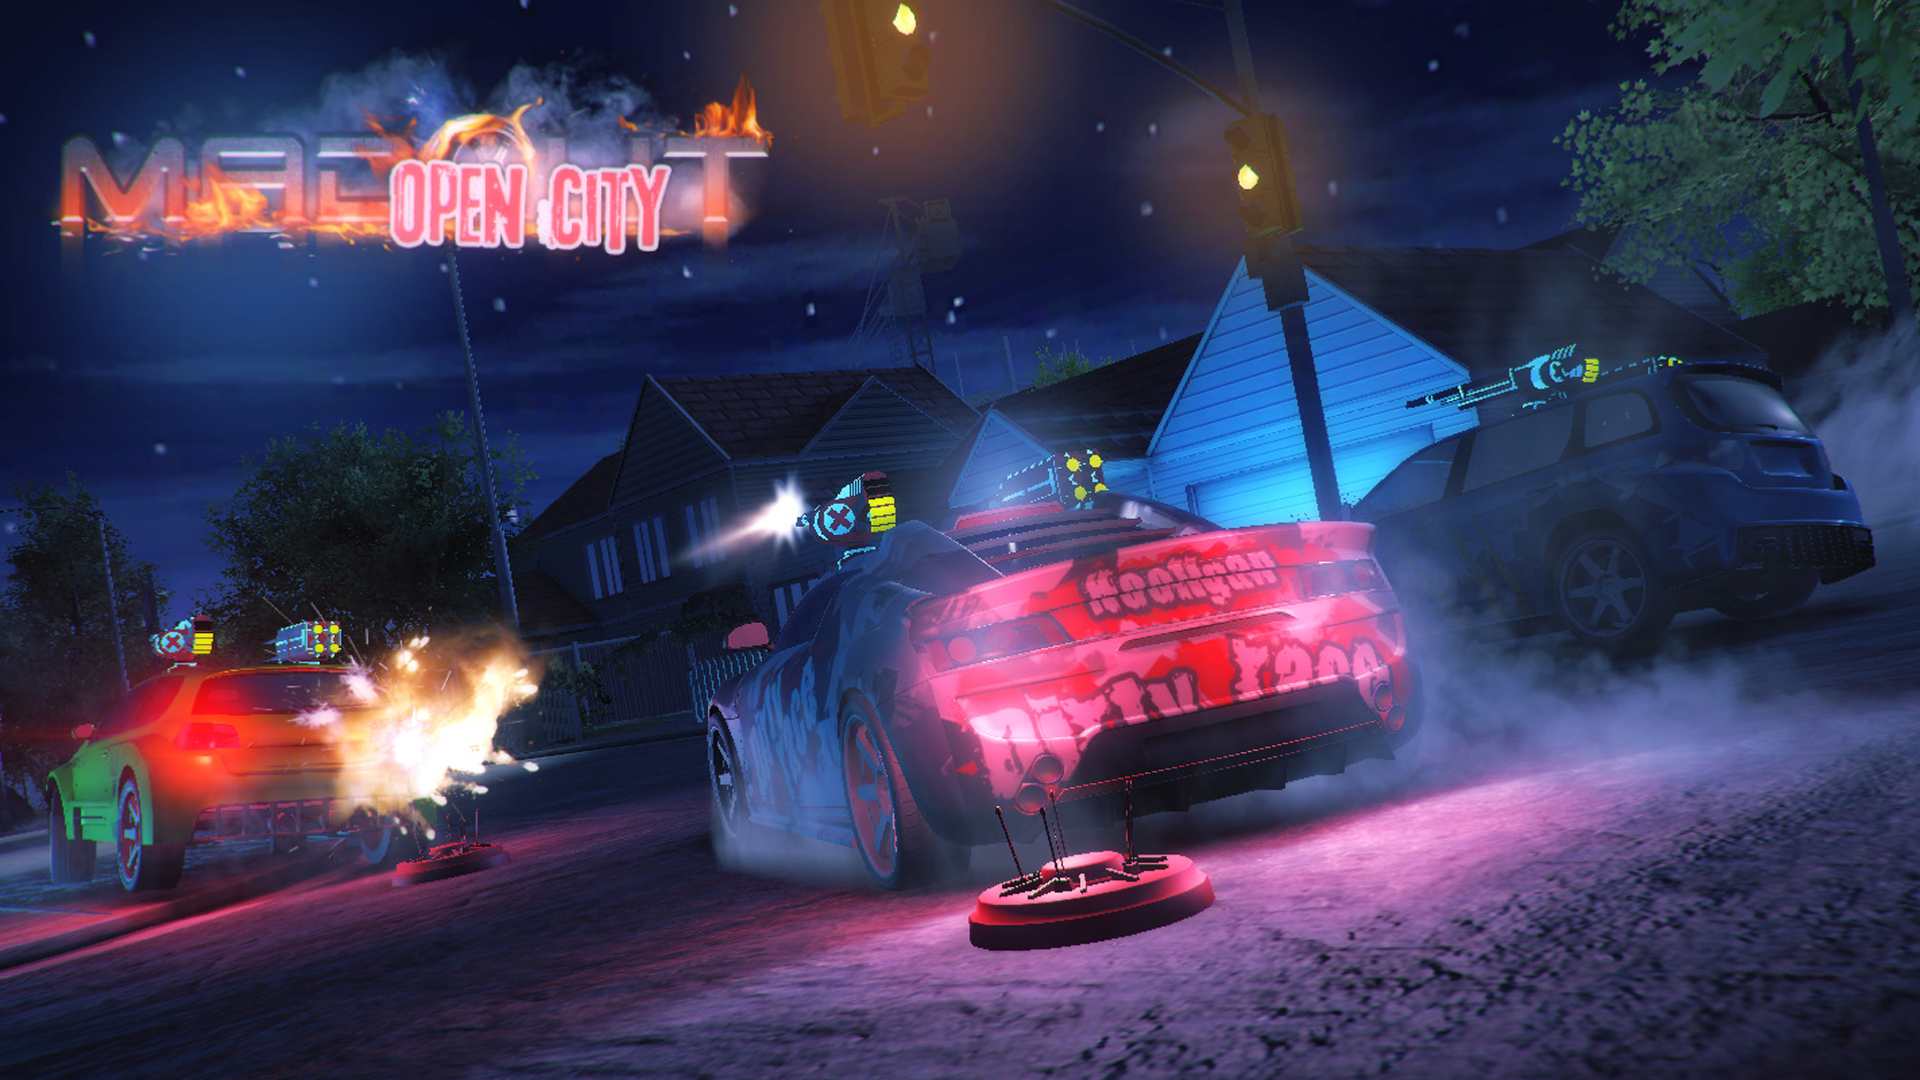 MadOut Open City screenshot